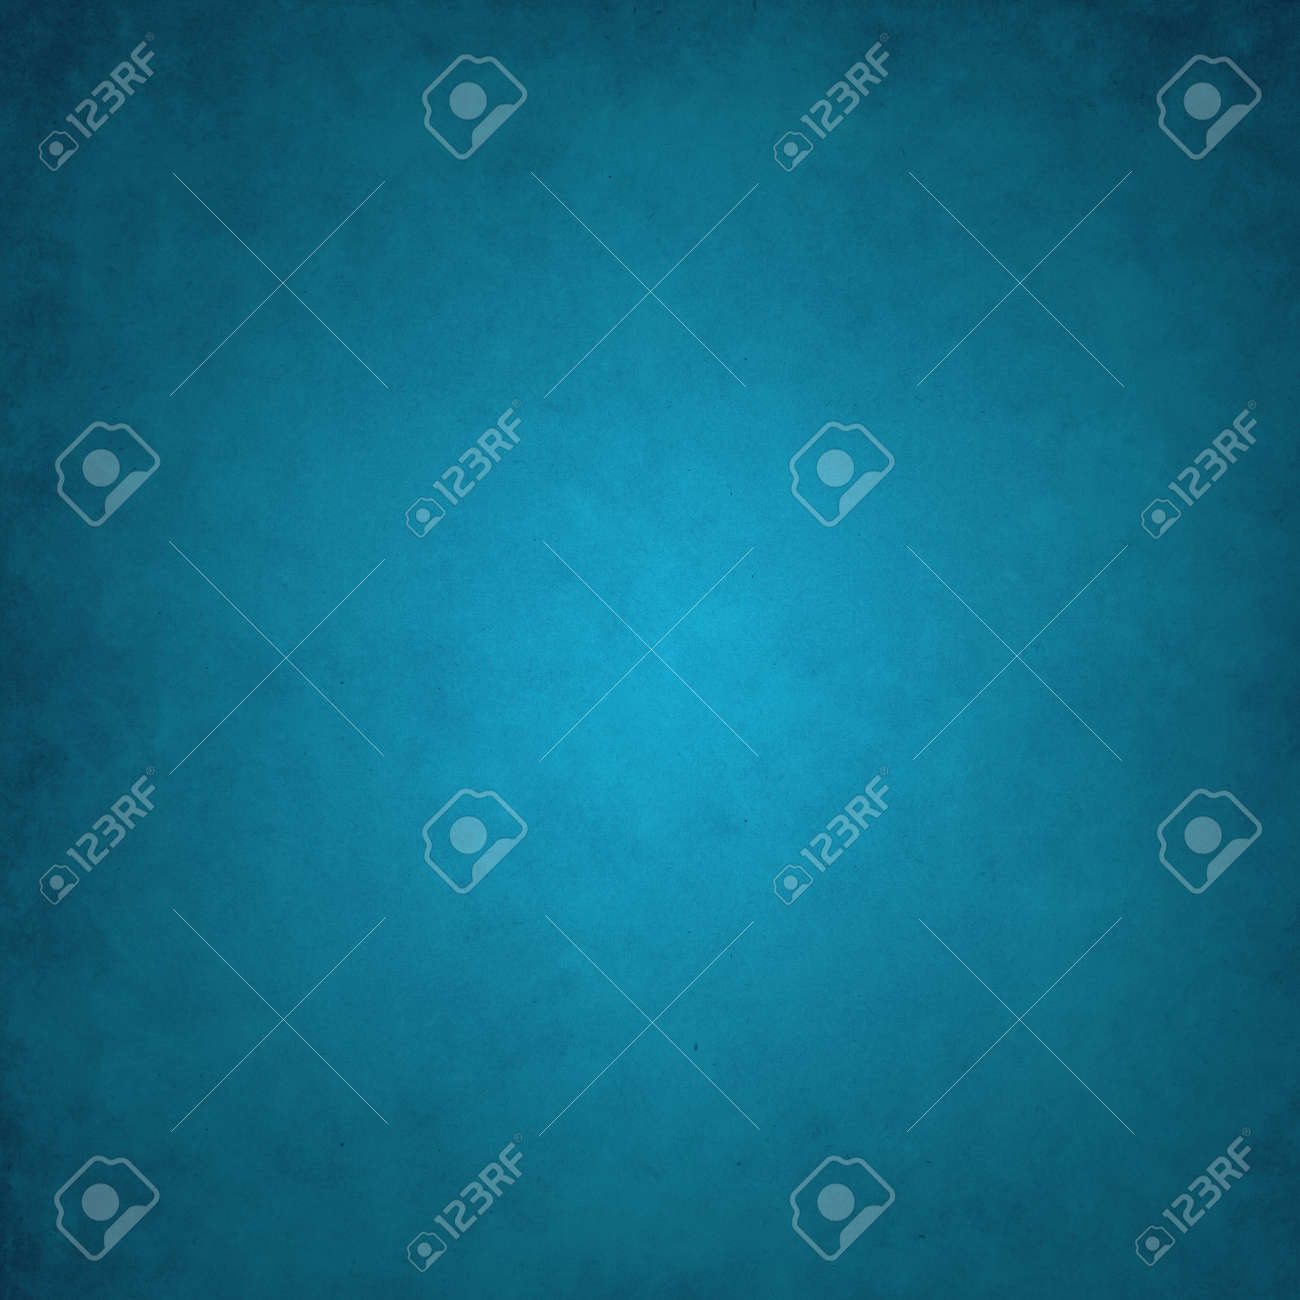 Abstract blue textured background - 45148156